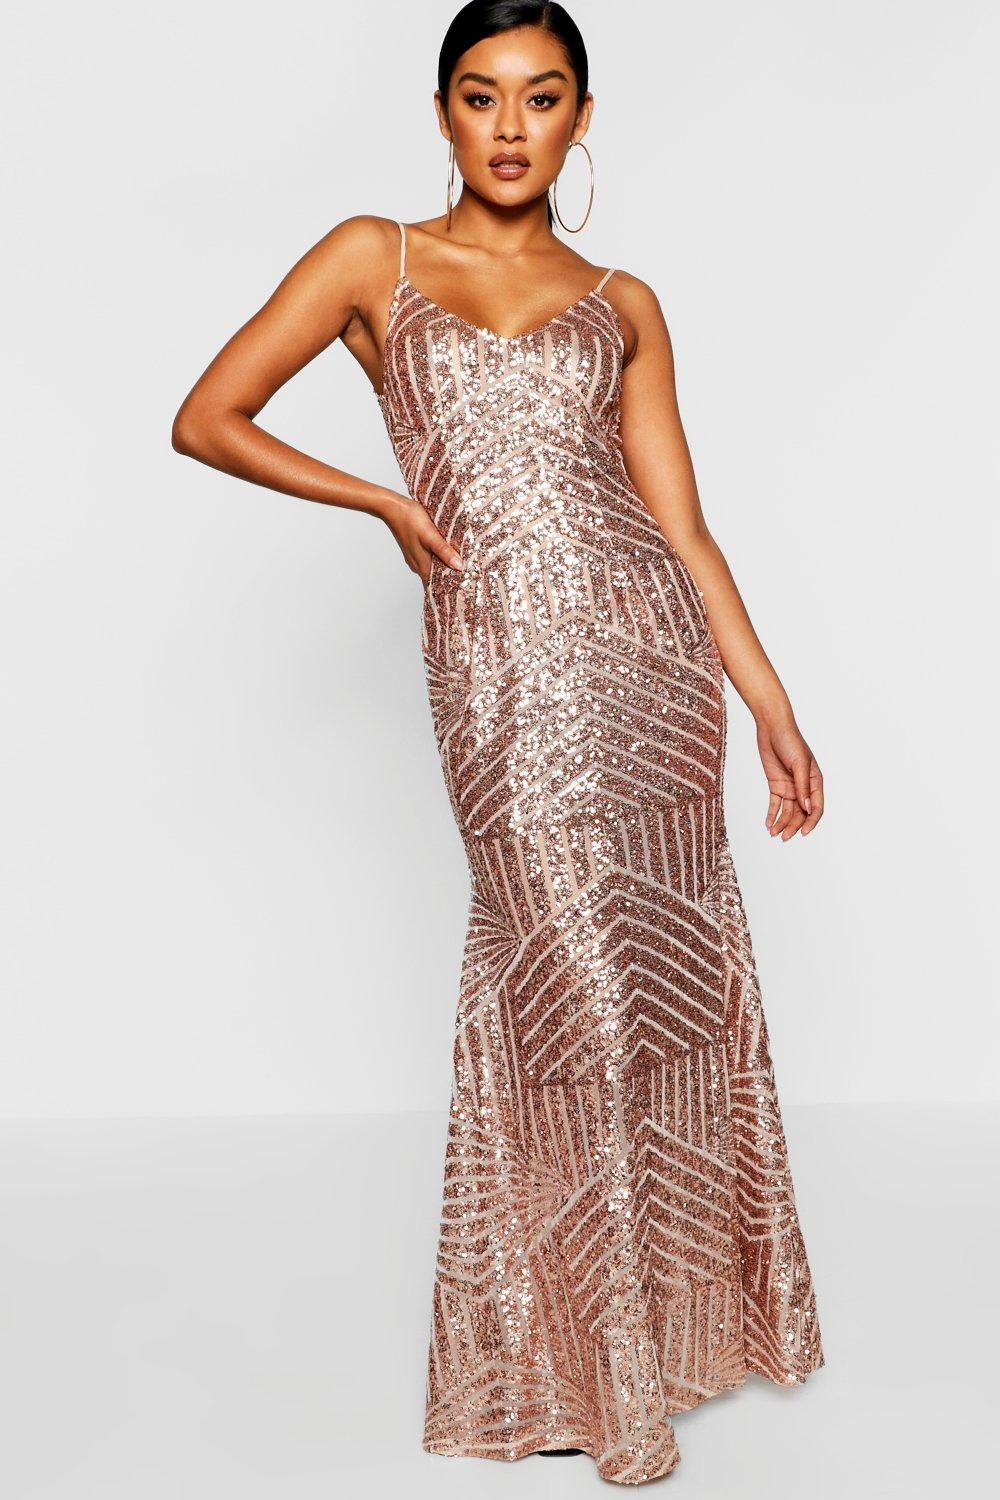 500 Vintage Style Dresses for Sale | Vintage Inspired Dresses Womens Sequin  Mesh Strappy Maxi Dress - pink - 12 $75.00 AT vintagedancer.com